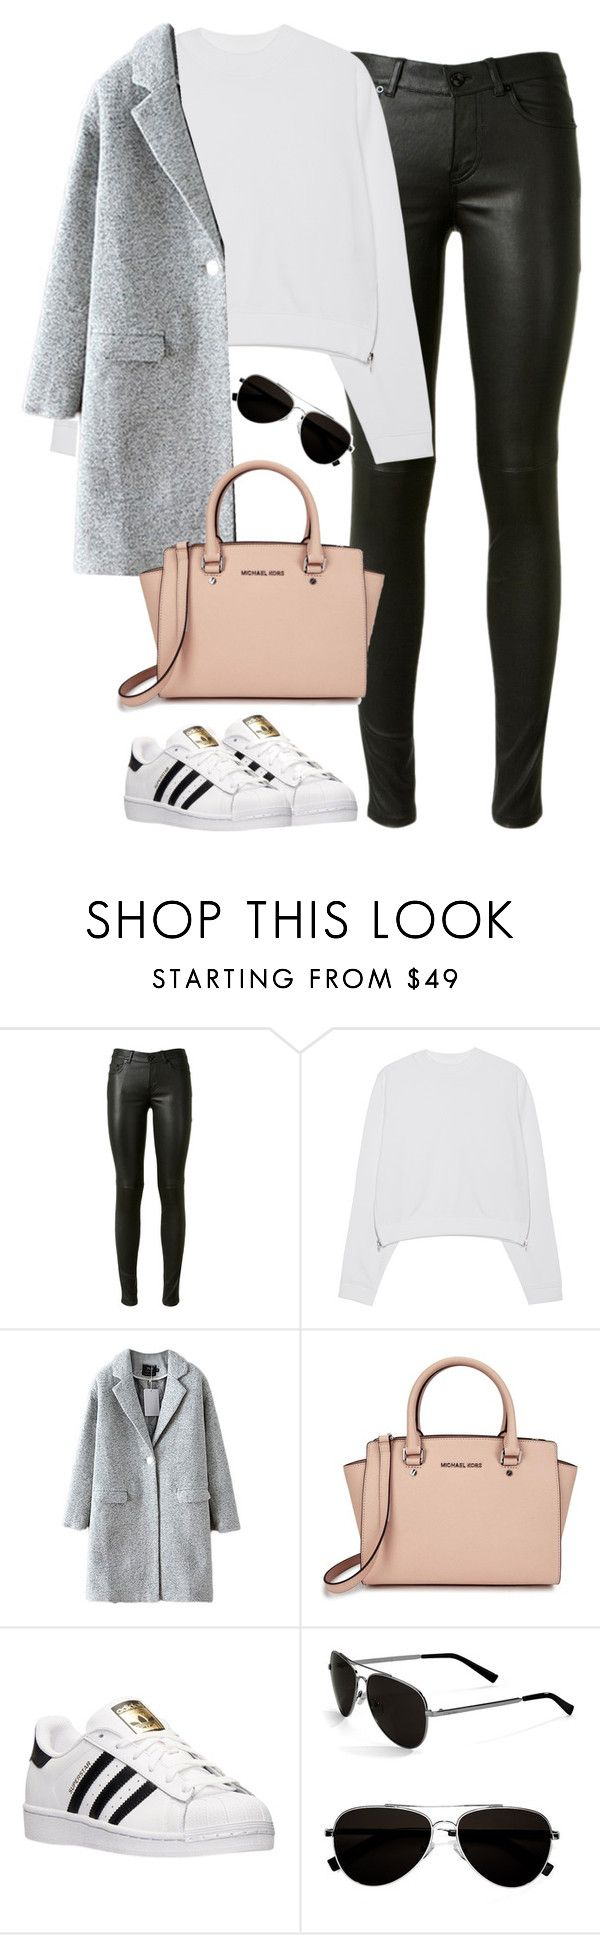 """""""Untitled #459"""" by christyandnef on Polyvore featuring Yves Saint Laurent, Acne Studios, Michael Kors, adidas, Calvin Klein, women's clothing, women, female, woman and misses"""